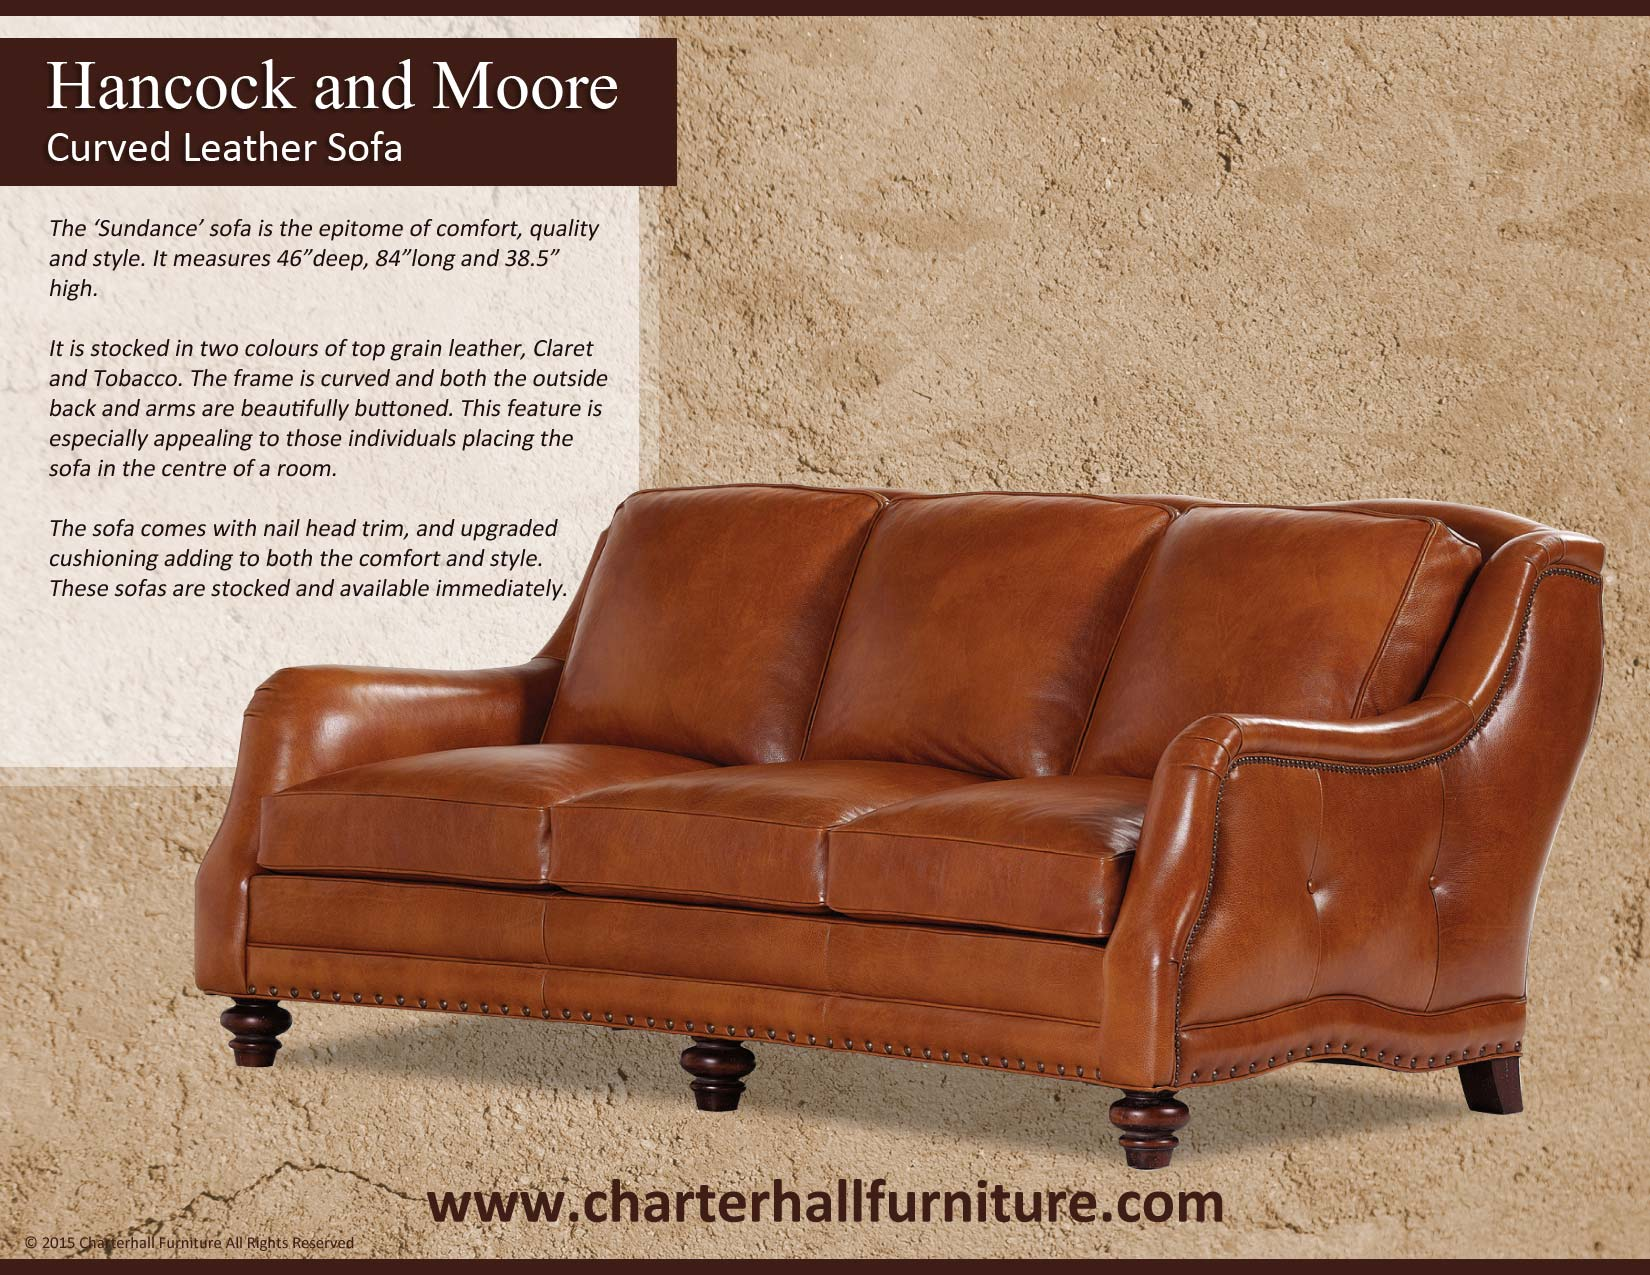 Charterhall Fine Interiors Purveyors of Fine Furniture